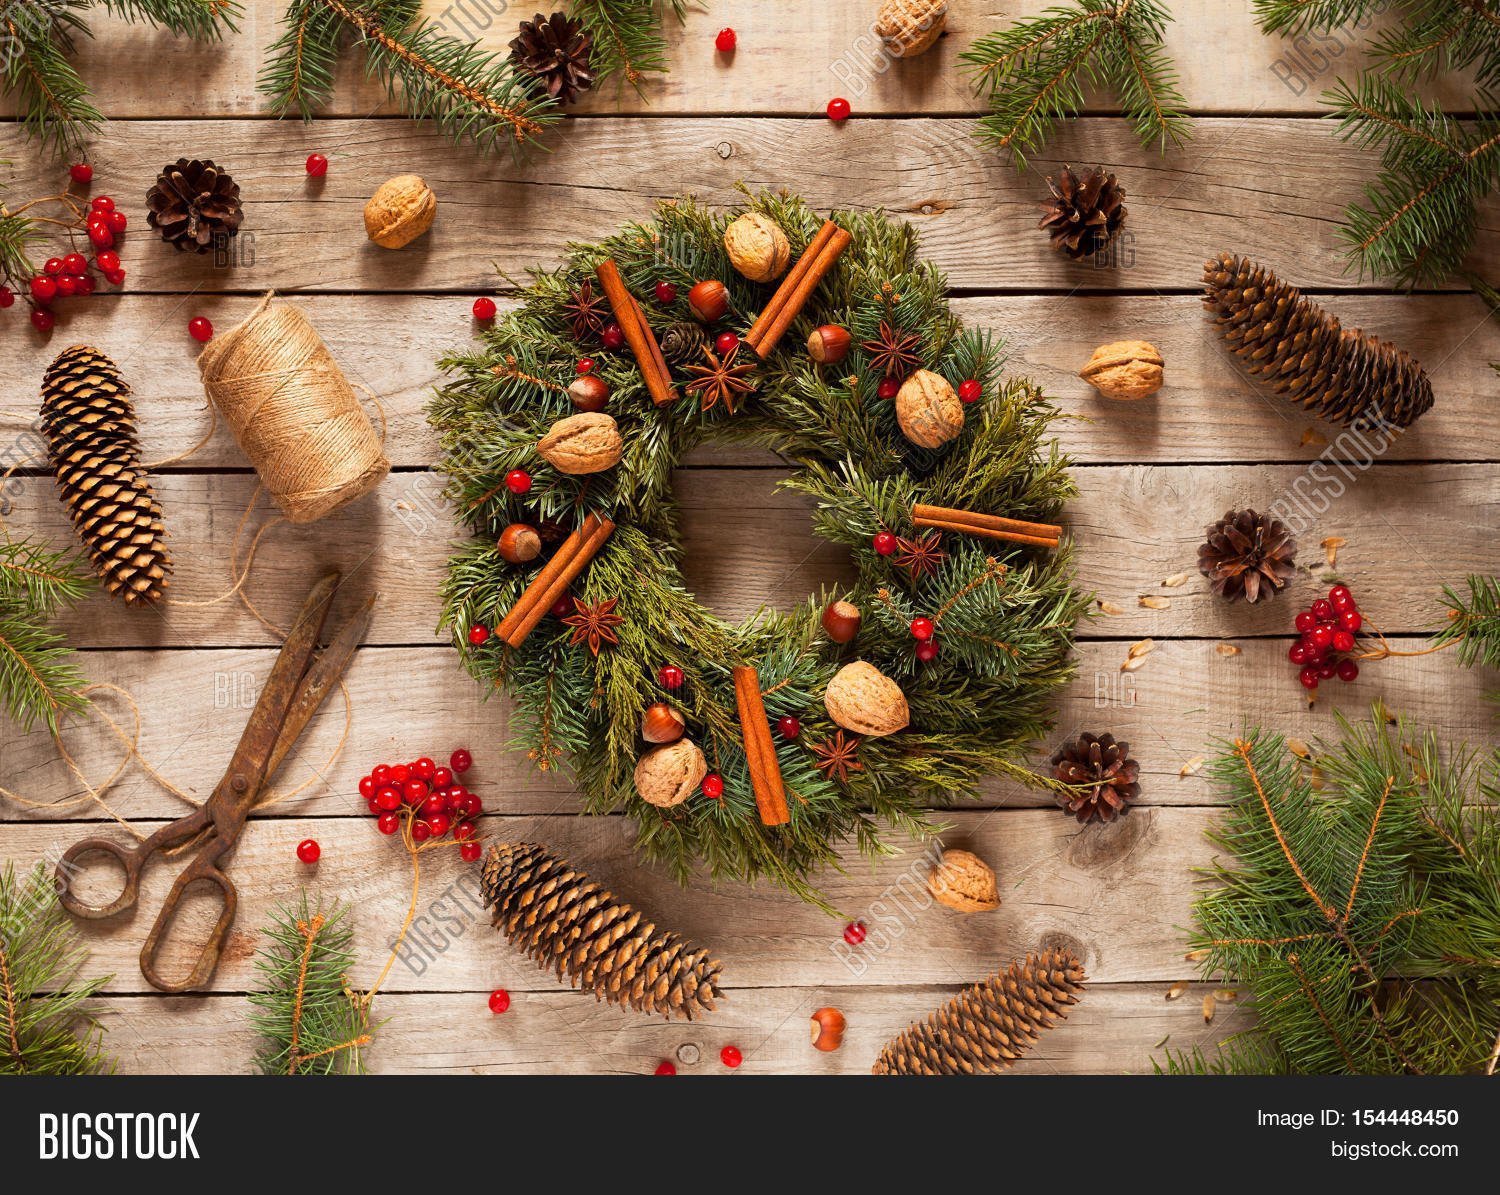 Advent christmas wreath natural image photo bigstock for Advent decoration ideas